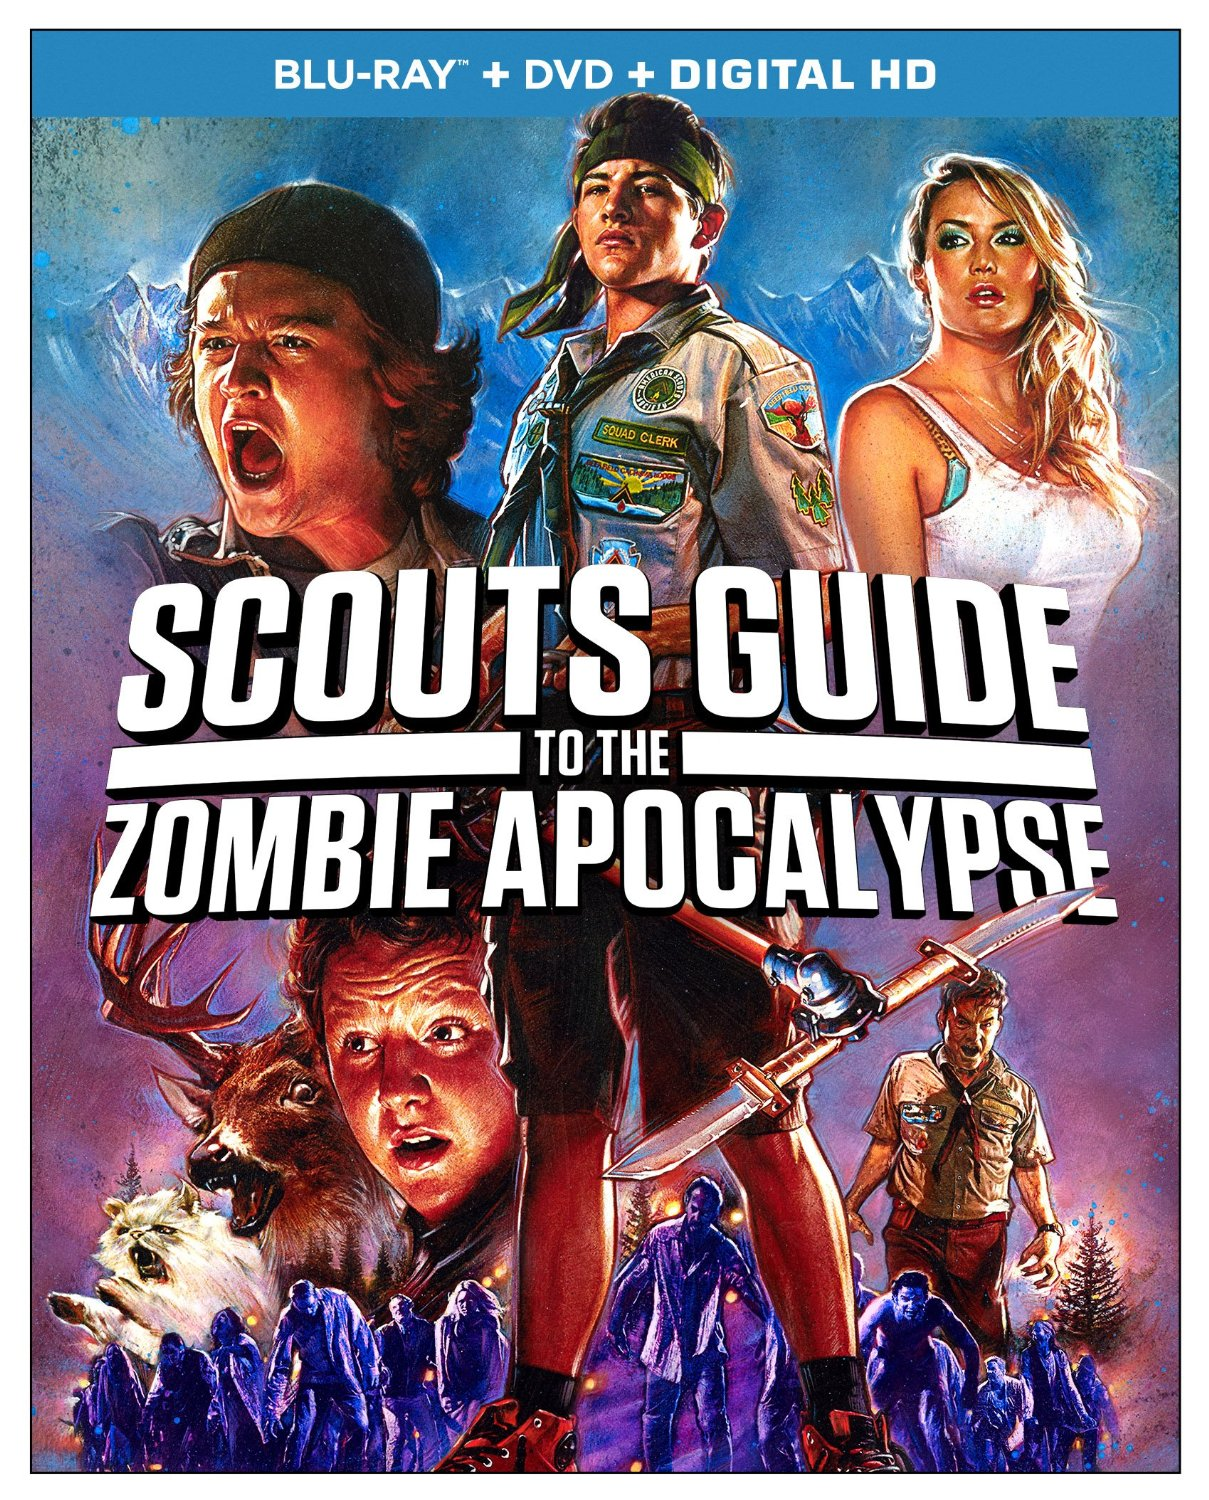 Scouts Guide to the Zombie Apocalypse - Rotten Tomatoes